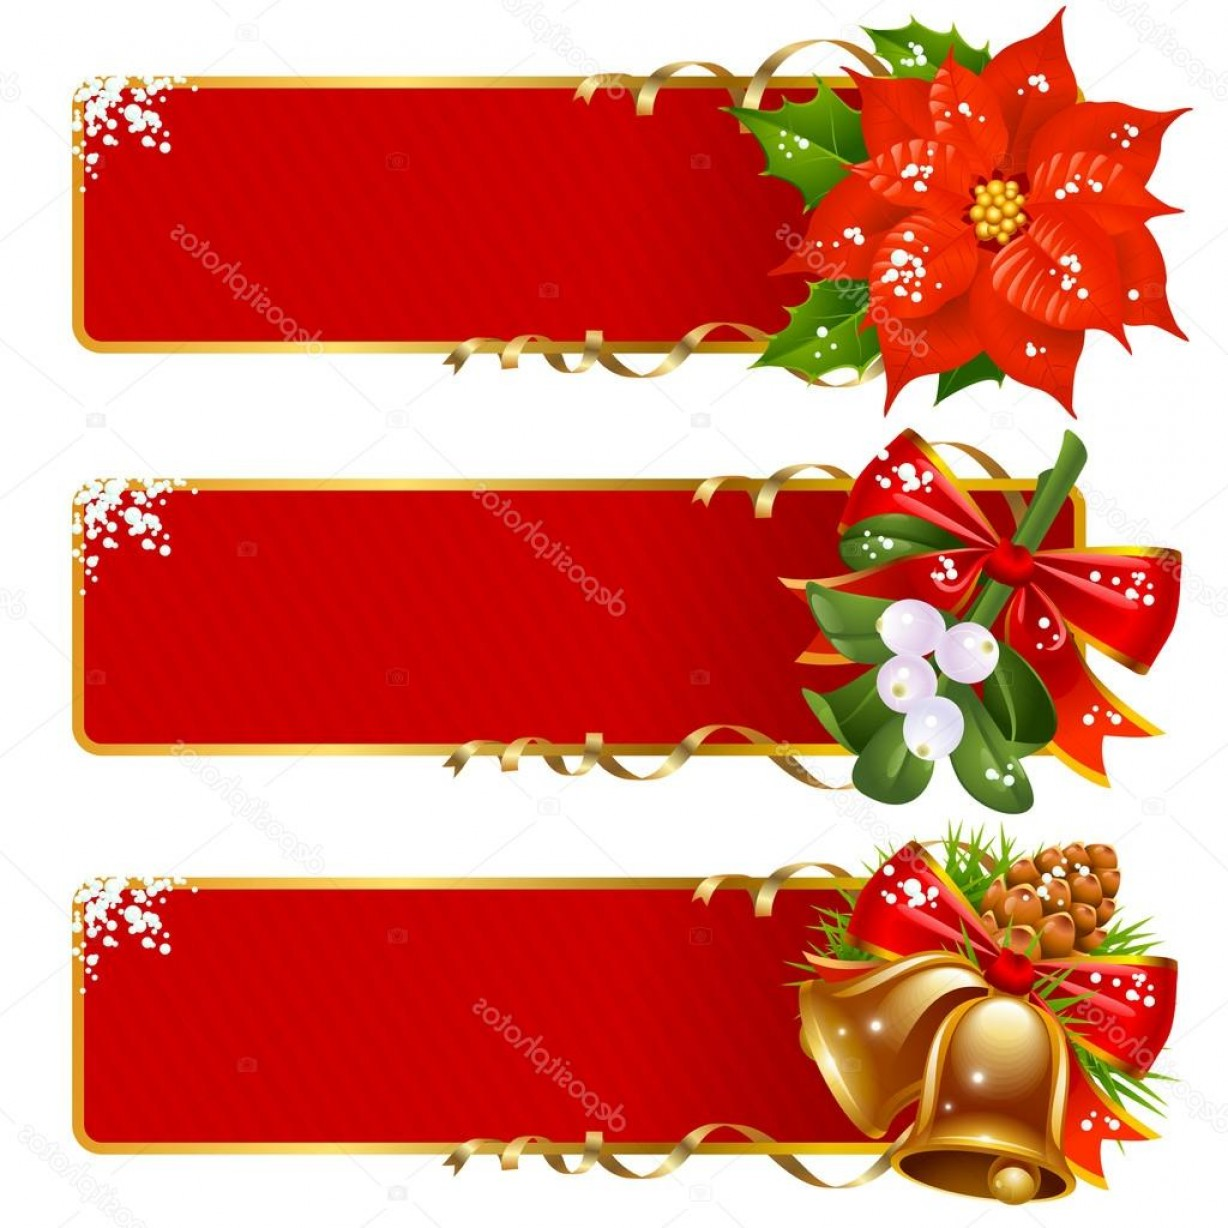 Christmas Horizontal Vector: Stock Illustration Christmas Horizontal Background Set